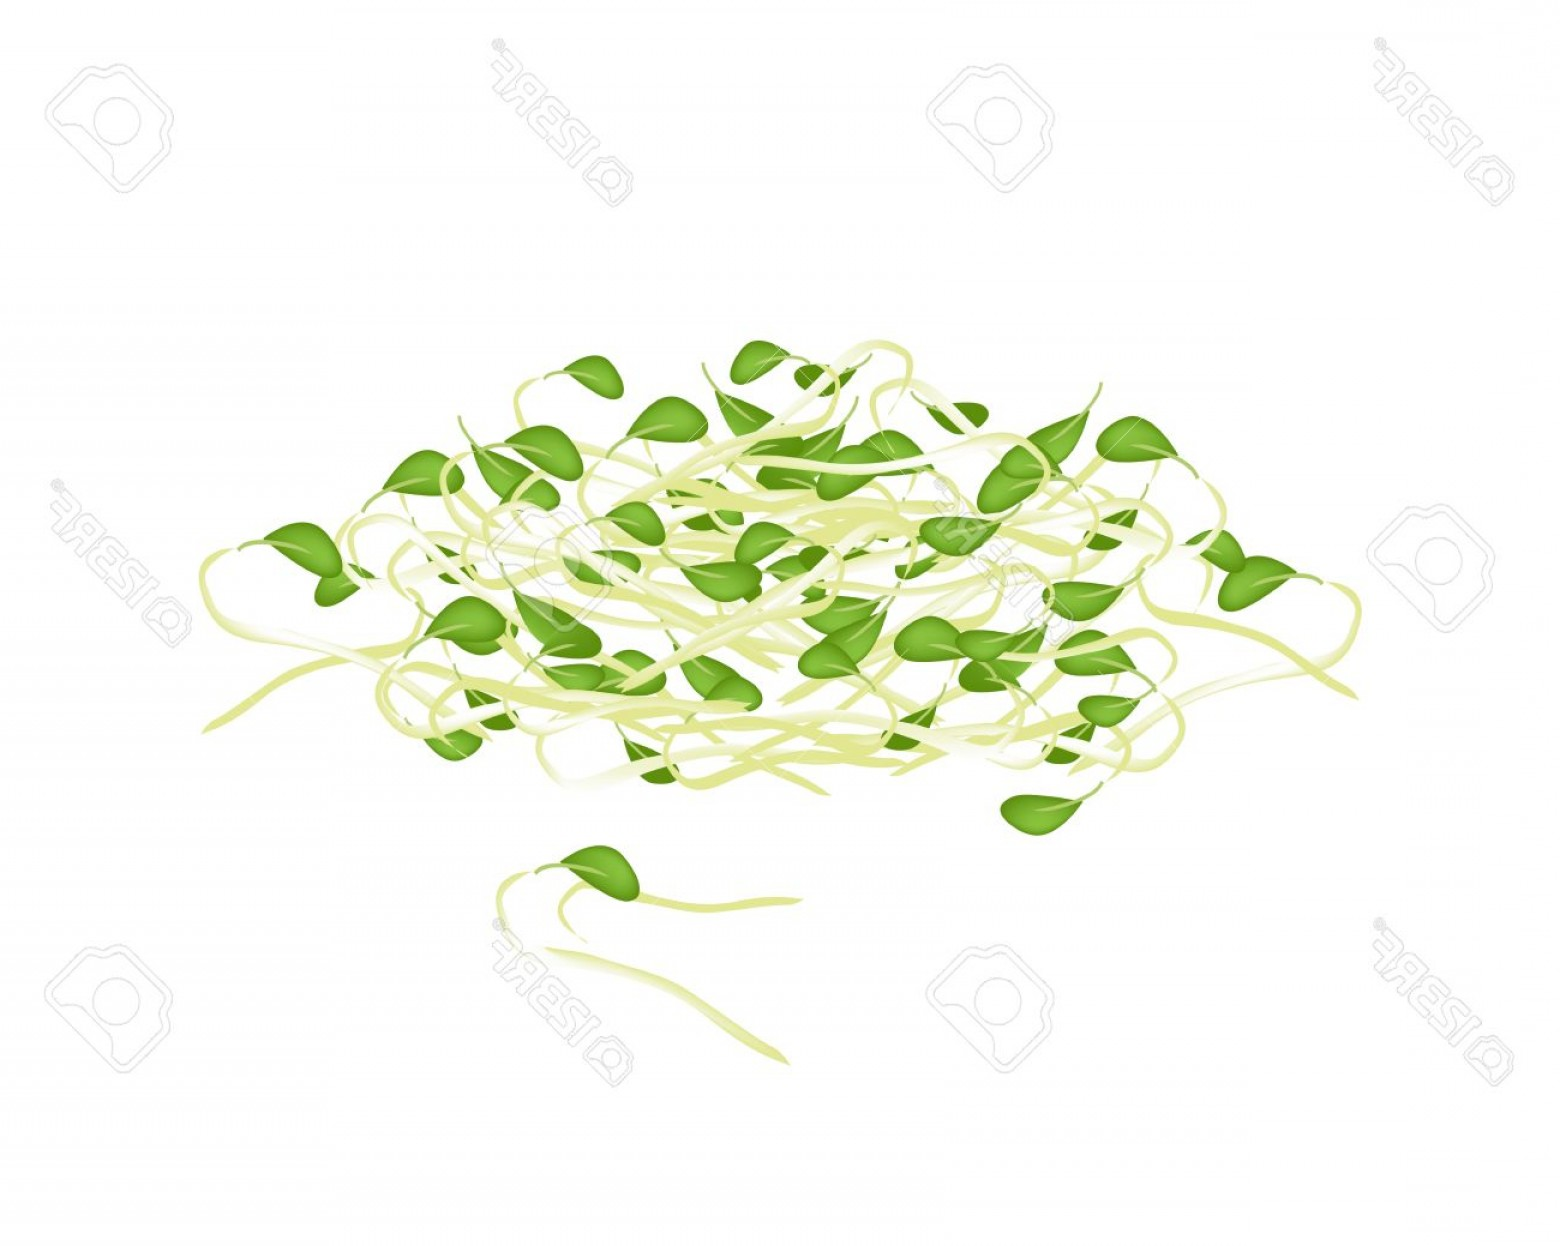 Alfalfa Sprouts Vector: Photovegetable Vector Illustration Of Fresh Bean Sprouts Or Pea Seedlings With Green Leaves Isolated On W